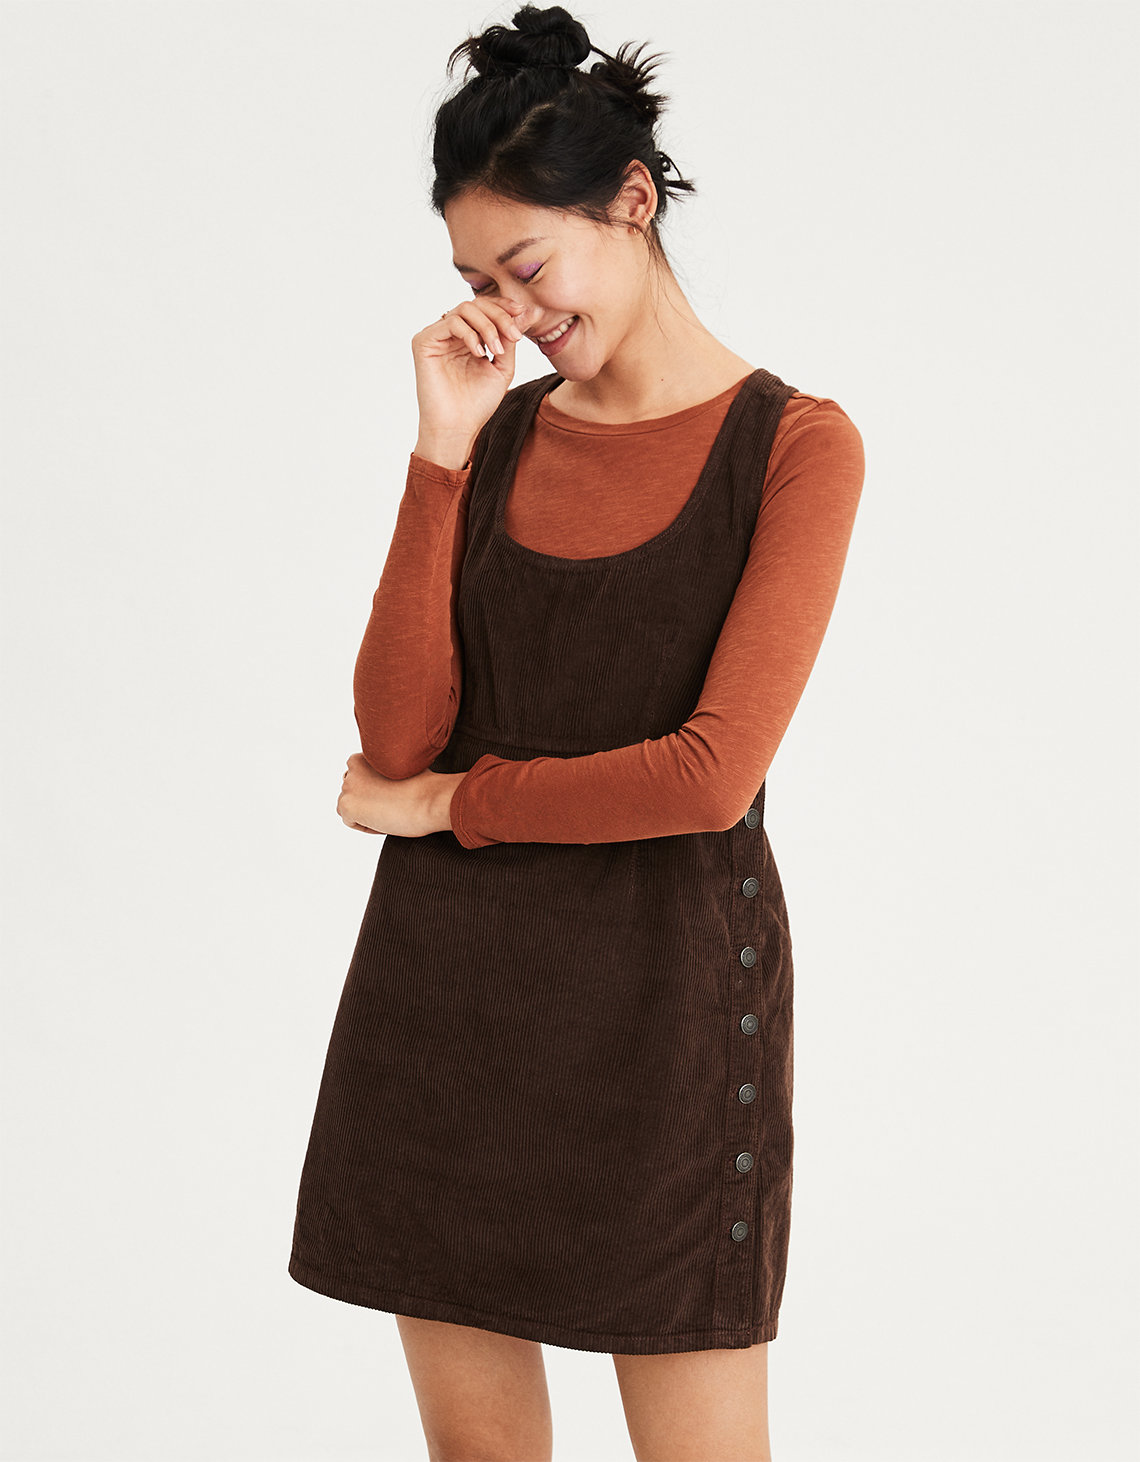 ce11cd527da AE Side Button Corduroy Dress. Placeholder image. Product Image